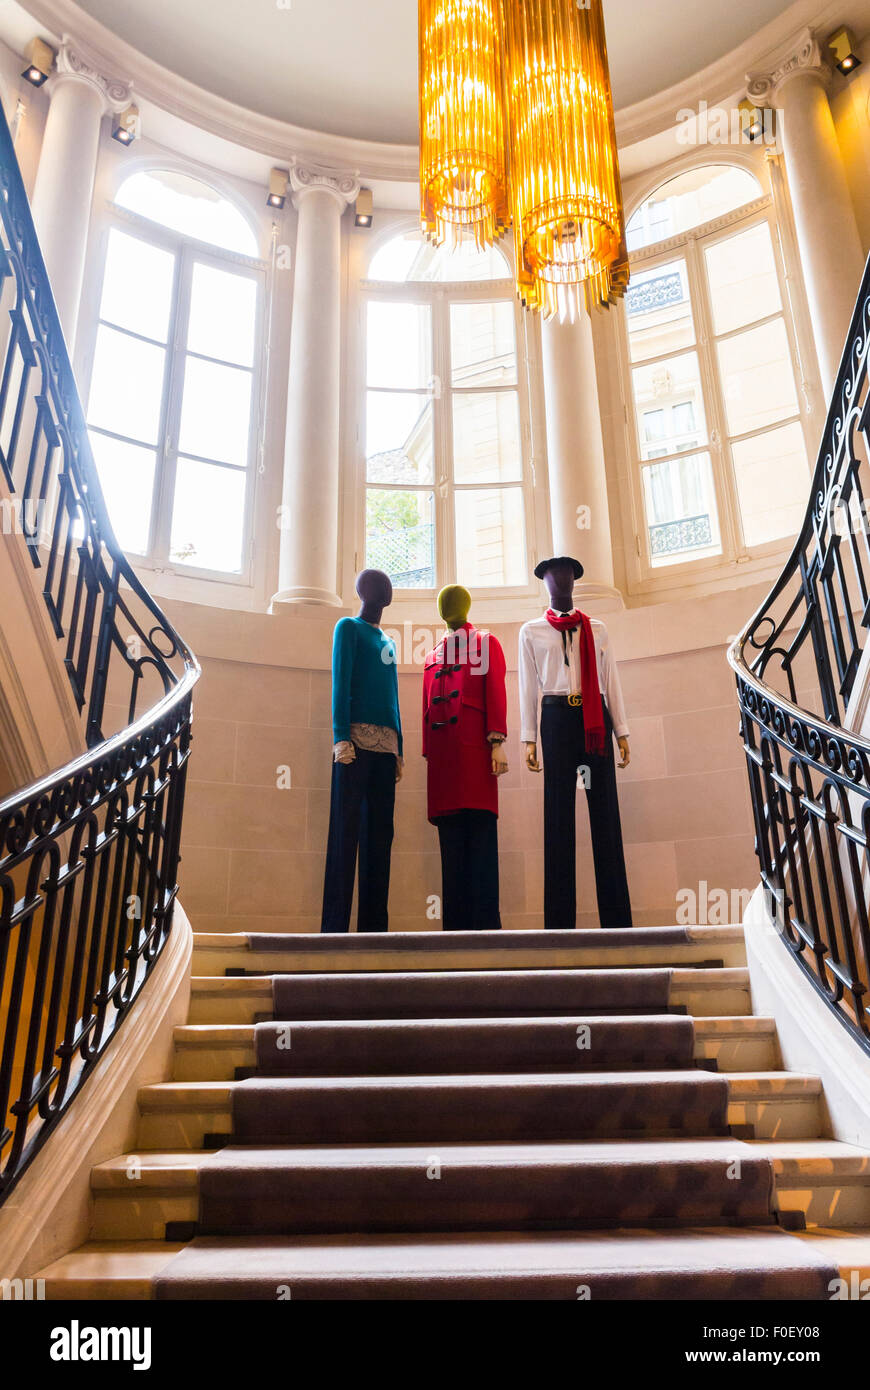 Paris, France, Mannequins Clothing Display On Staircase, Shop Inside,  Luxury Brands Store, Gucci,